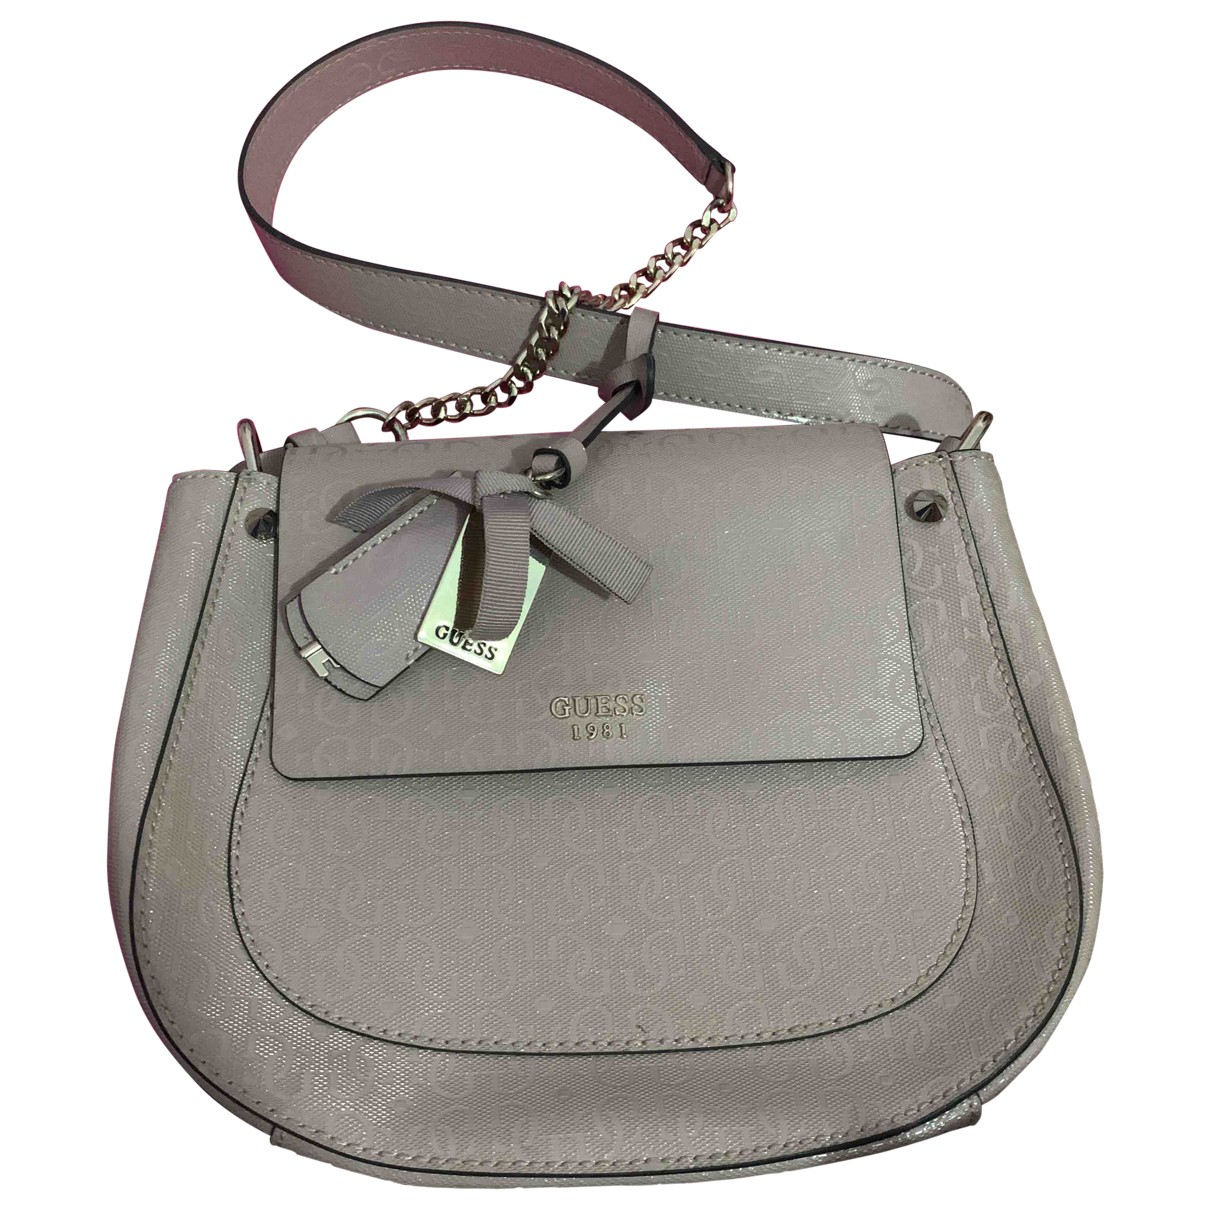 Guess \N Leather handbag for Women \N